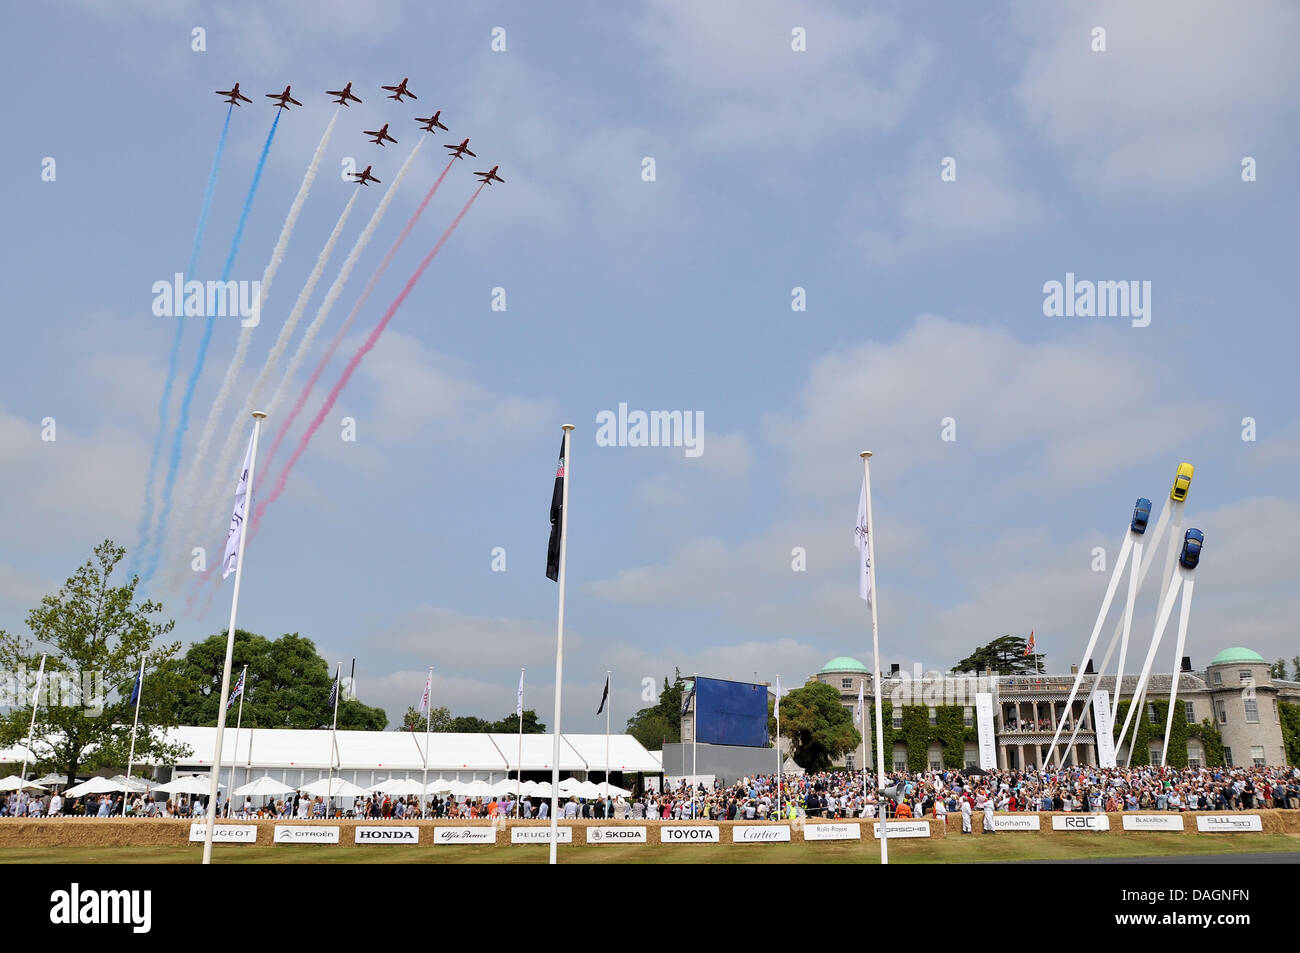 Red Arrows flypast over Goodwood House. The Goodwood Festival of Speed. Crowd. People. Porsche sculpture. Space Stock Photo